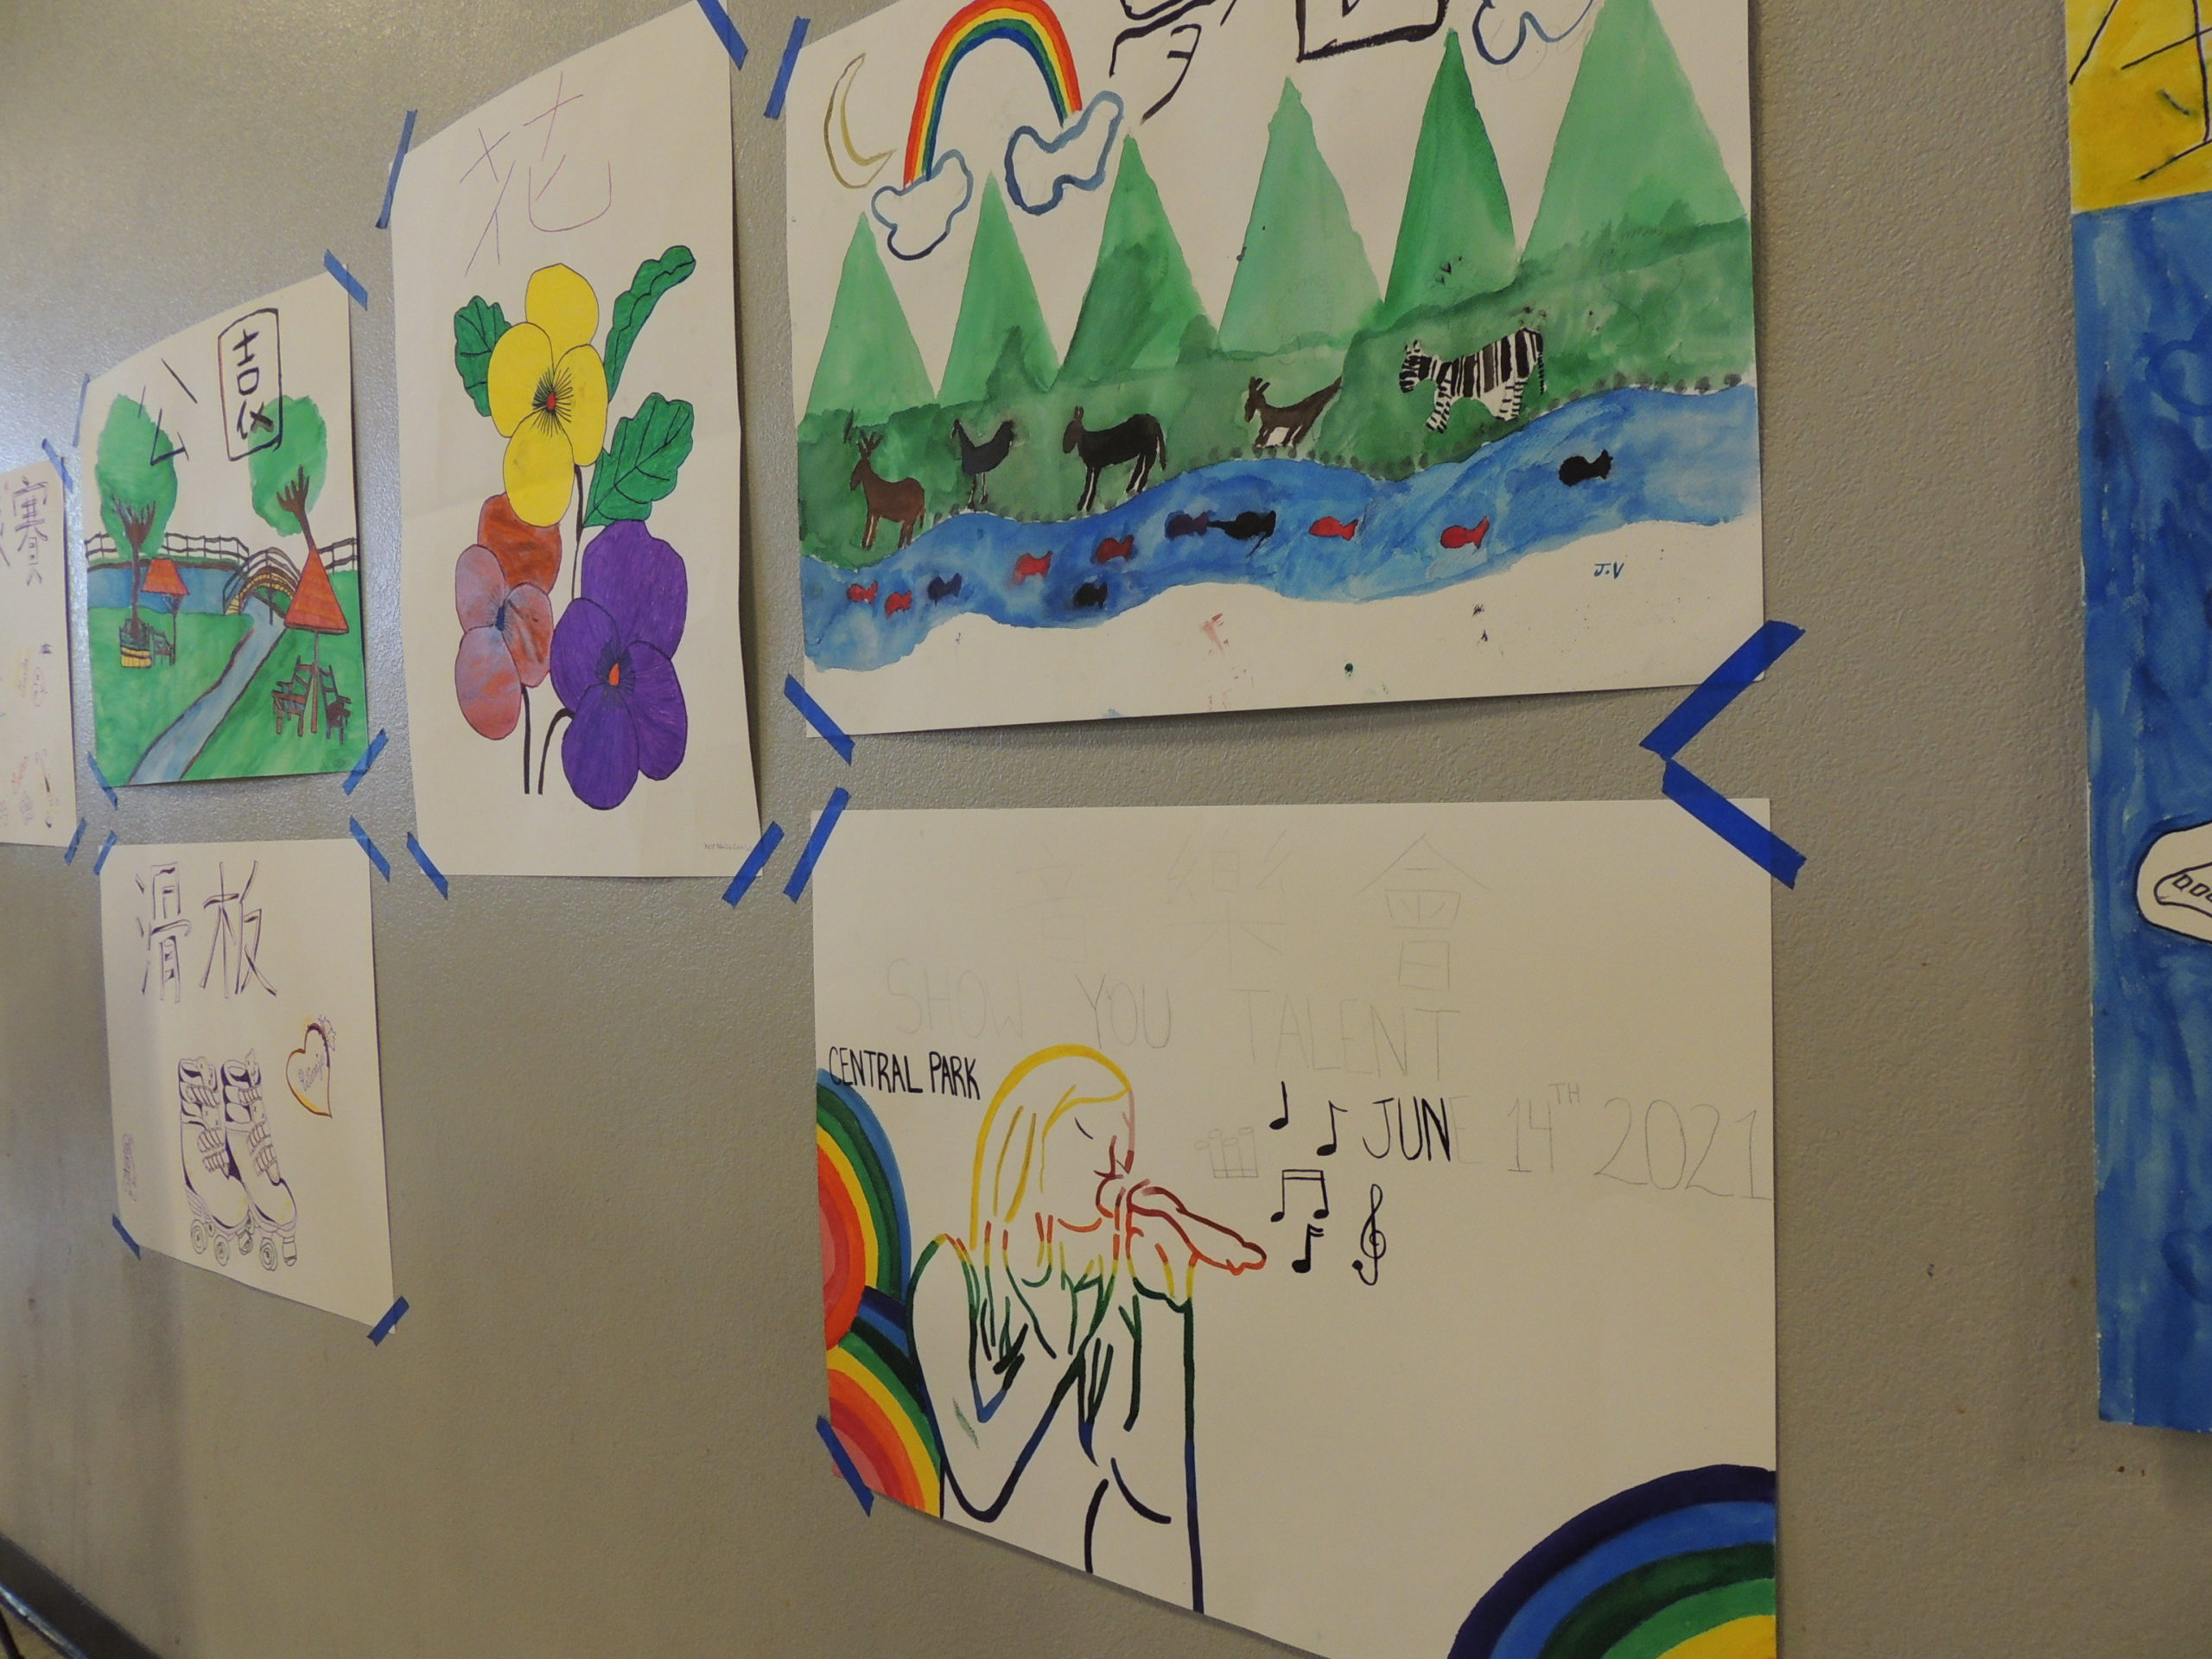 Art created by youth in collaboration with Free Arts